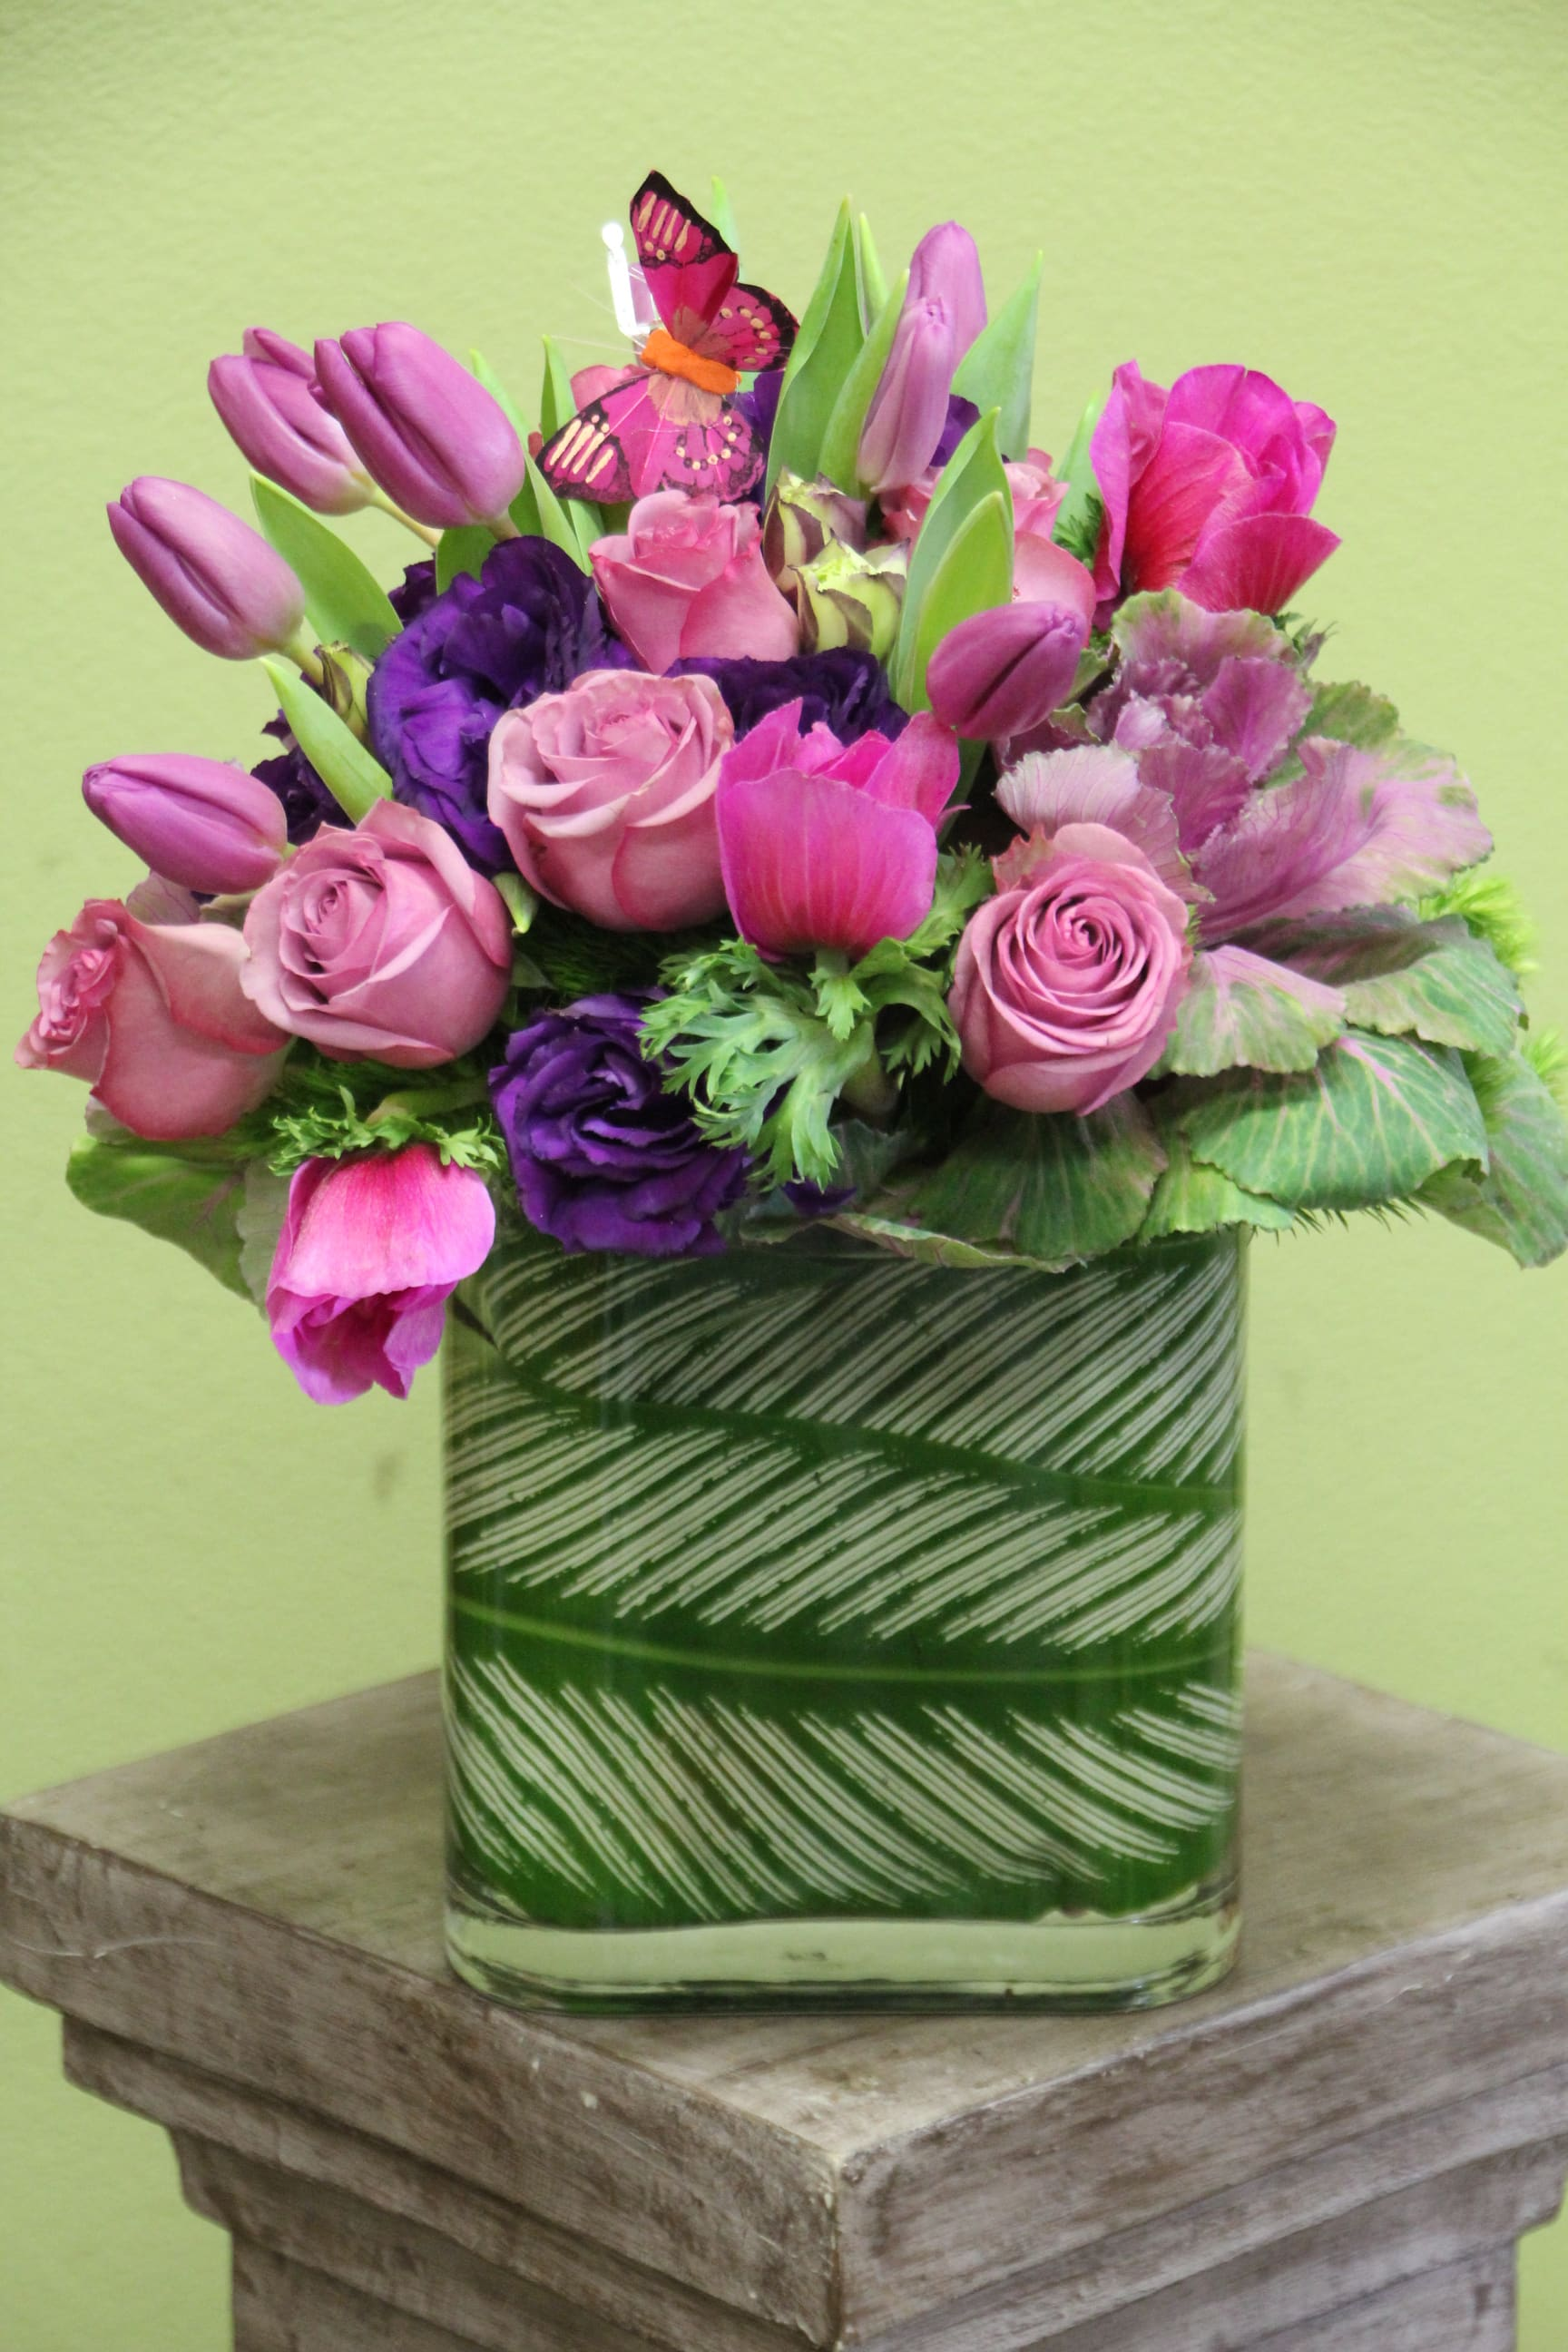 Elaine - Purple Roses, Tulips, Lavender flowers.